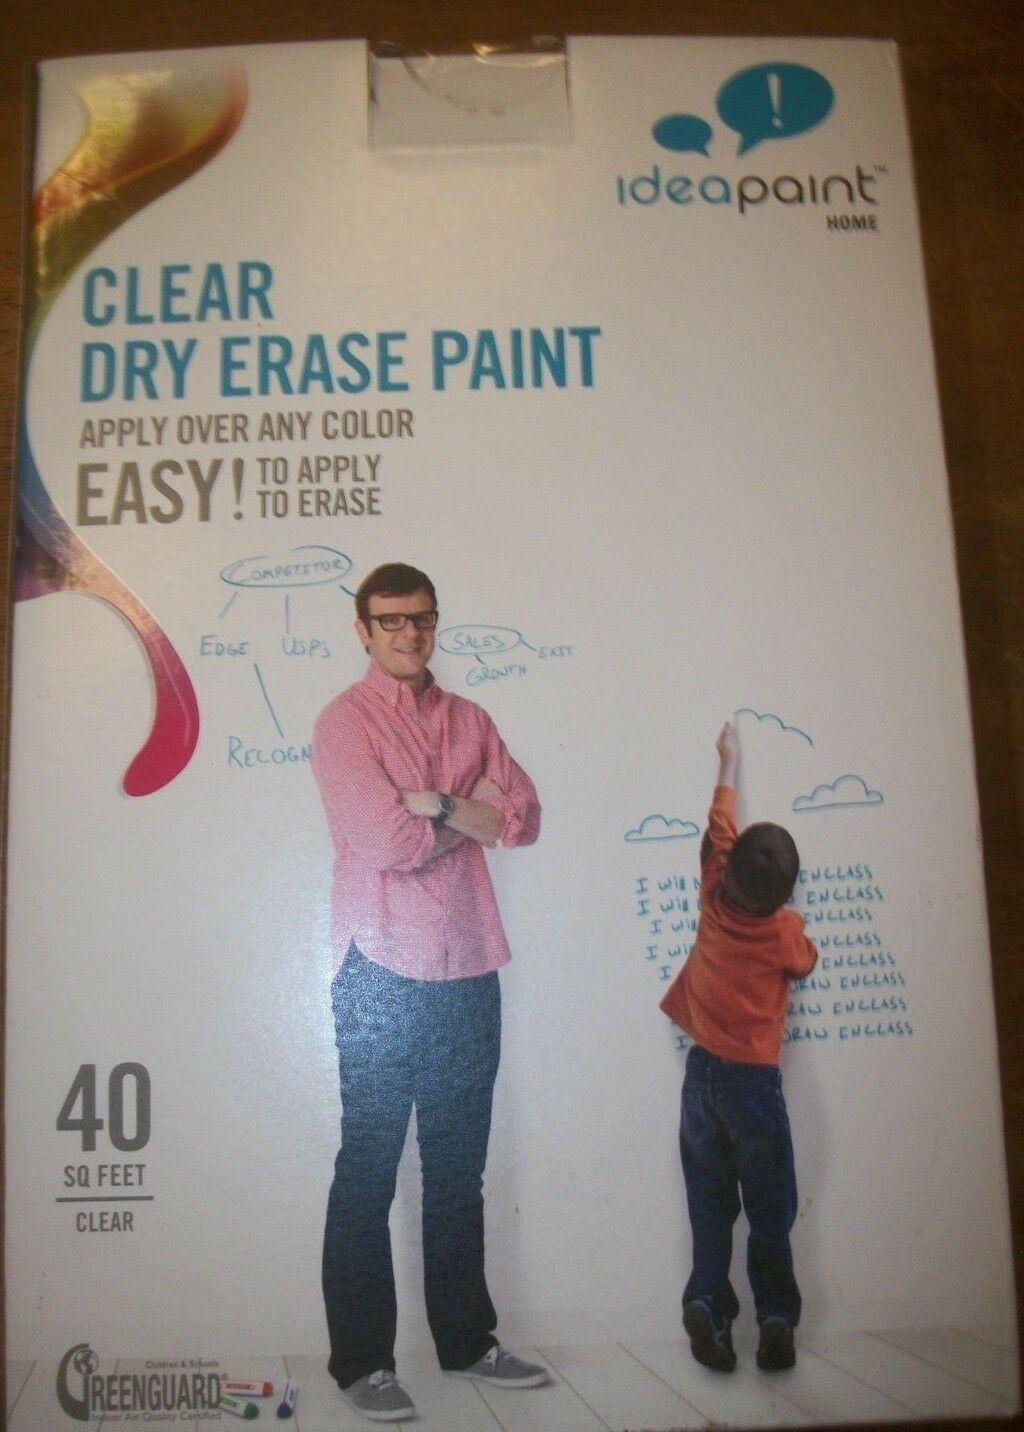 Ideapaint Clear Dry Erase Paint 40 sq ft - Apply over any color